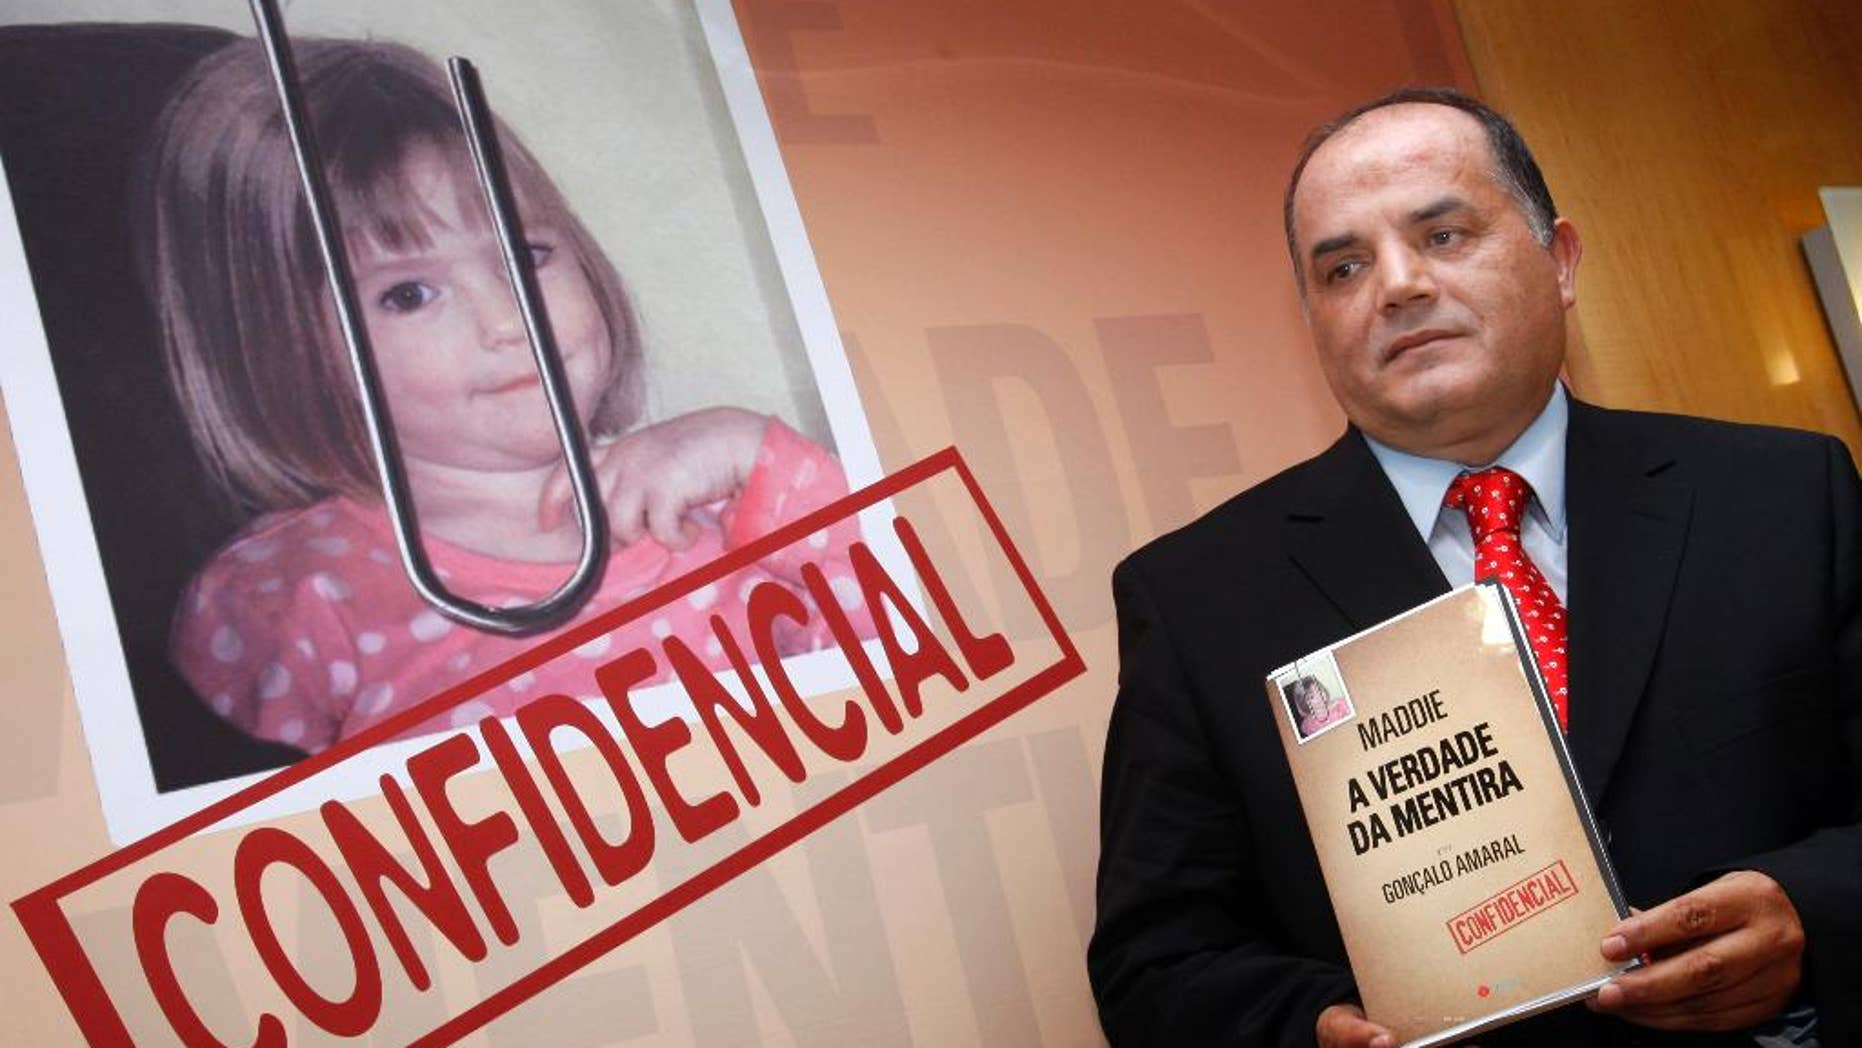 """FILE - In this July 24, 2008 file photo, former detective Goncalo Amaral poses with his book whose title translates as """"The Truth in the Lies"""", during its launch in Lisbon. Portugal's Supreme Court has ruled that missing British girl Madeleine McCann's parents can't sue for libel a former Portuguese detective who published a book alleging they were involved in their daughter's disappearance. A court official told The Associated Press on Tuesday, Jan. 31, 2017 that Portugal's highest court ruled the allegations are protected by freedom of expression laws and weren't abusive. (AP Photo/Joao Henriques, file)"""